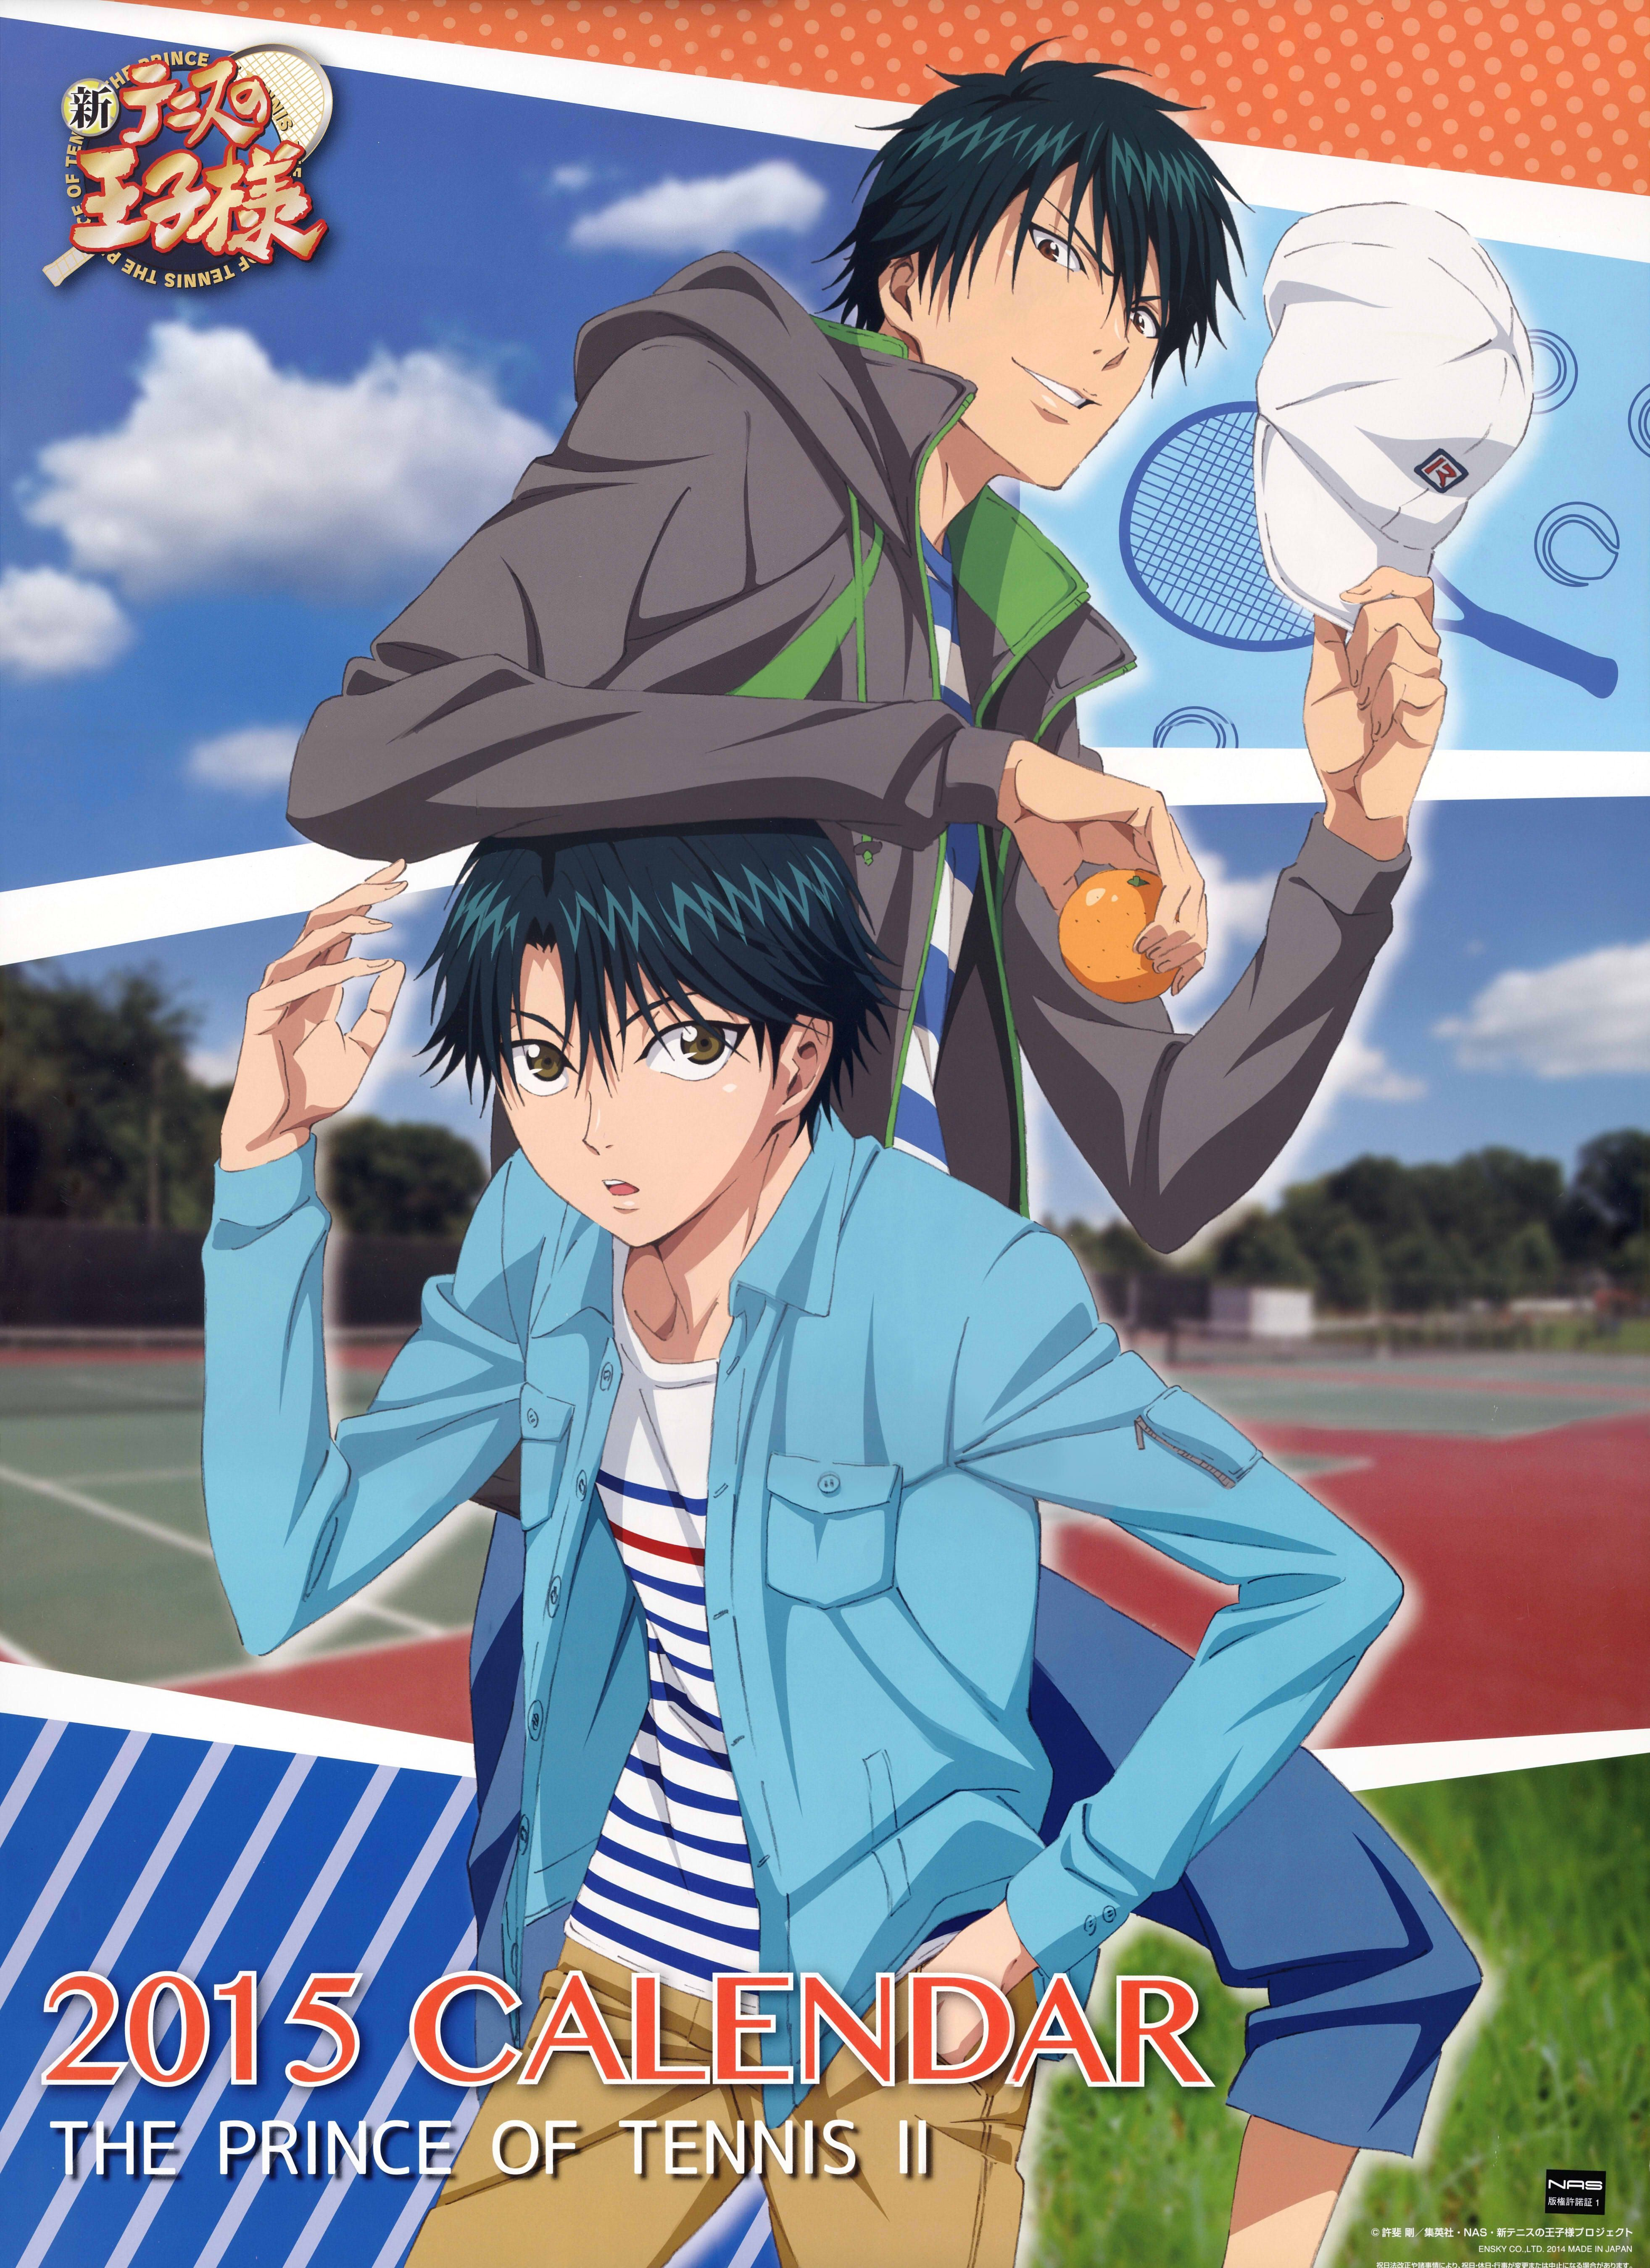 echizen.mine.nu 1000+ images about Prince of Tennis on Pinterest | The prince of tennis, Tennis and Prince